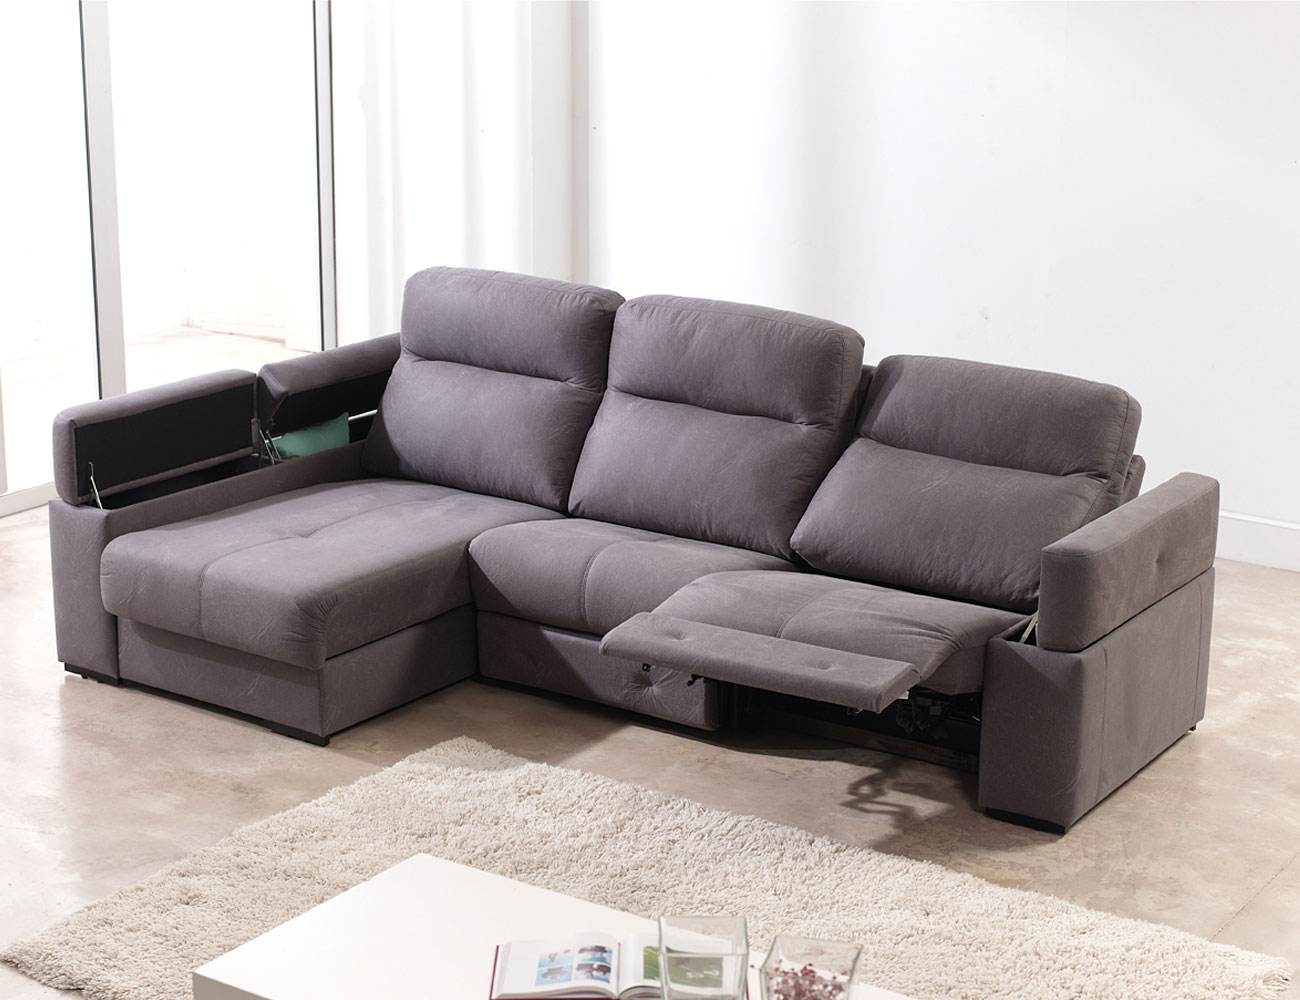 Sofa chaiselongue relax motor electrico 3 arcon 115